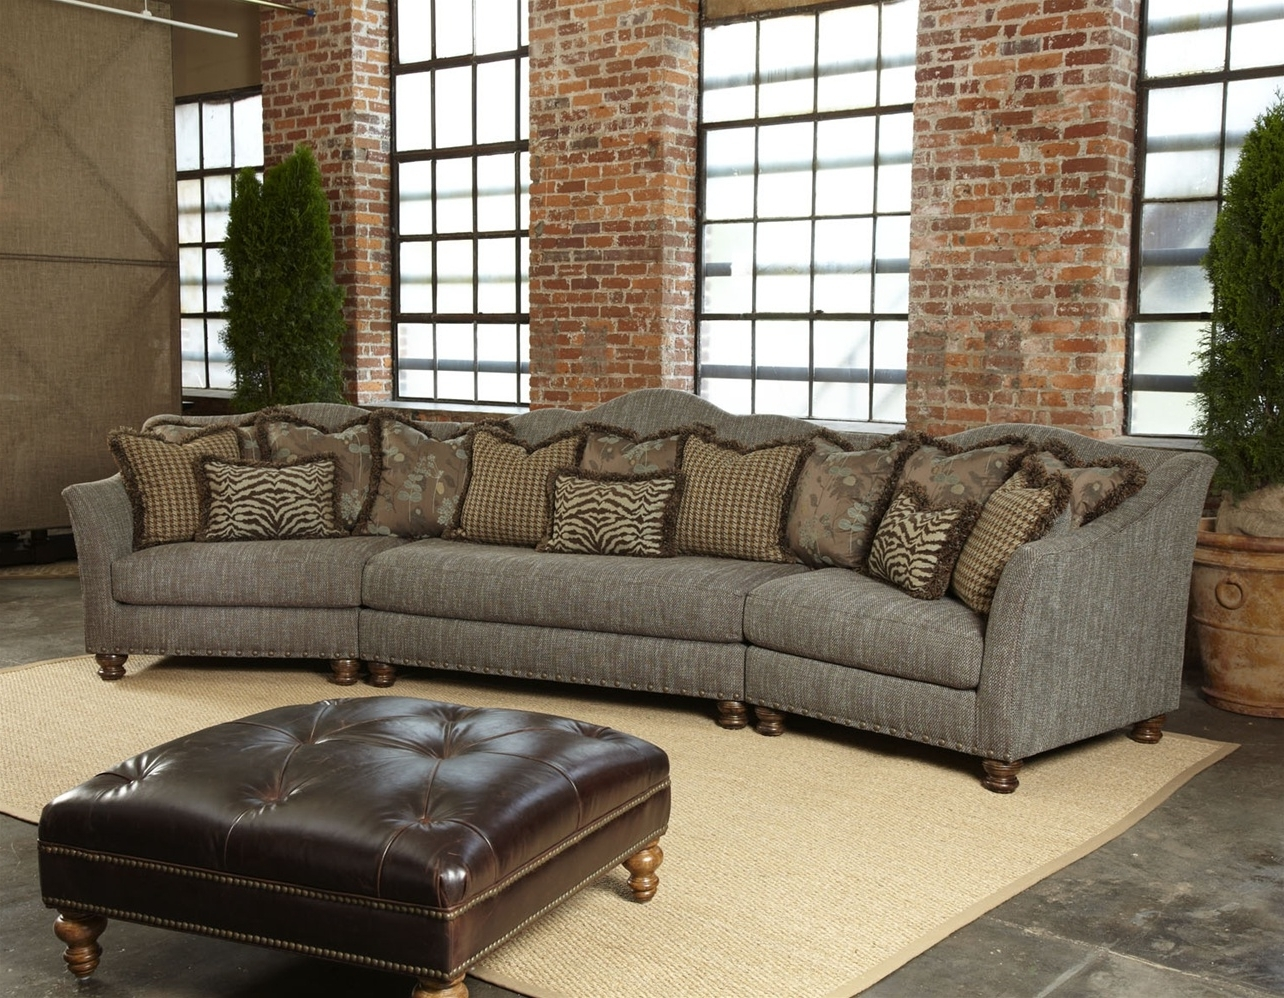 Favorite Good Quality Sectional Sofas – Cleanupflorida Regarding Sectional Sofas In North Carolina (View 10 of 15)